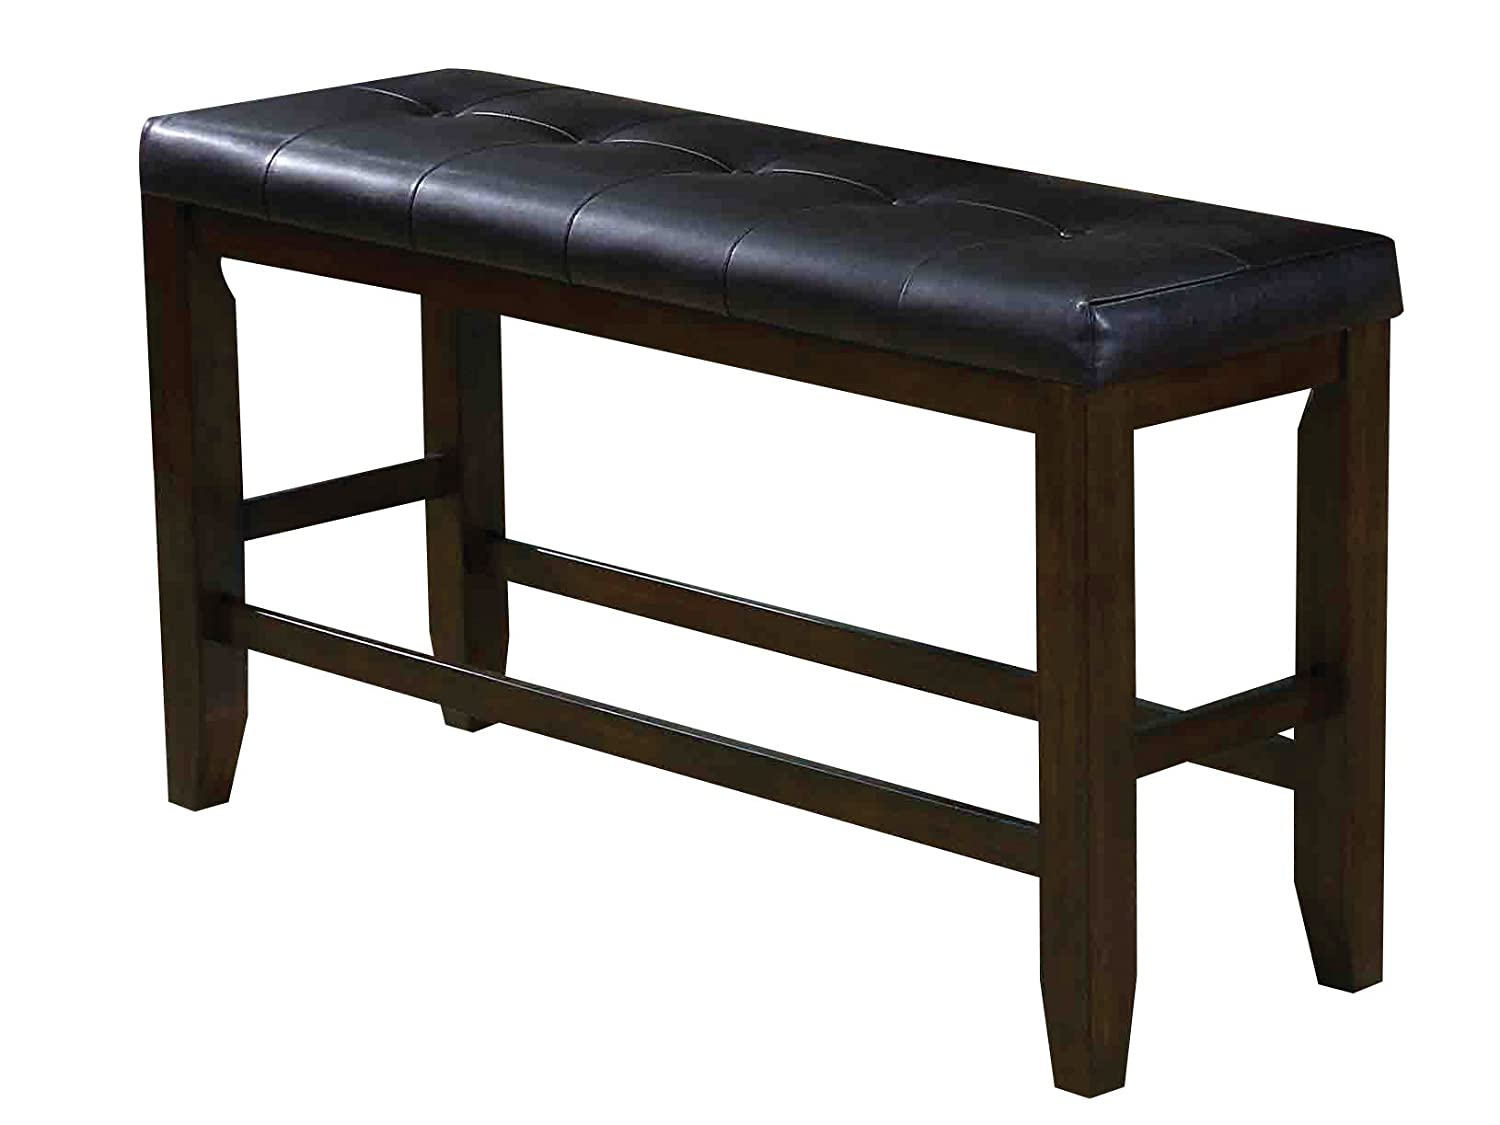 ACME Furniture bench, Black PU & Espresso